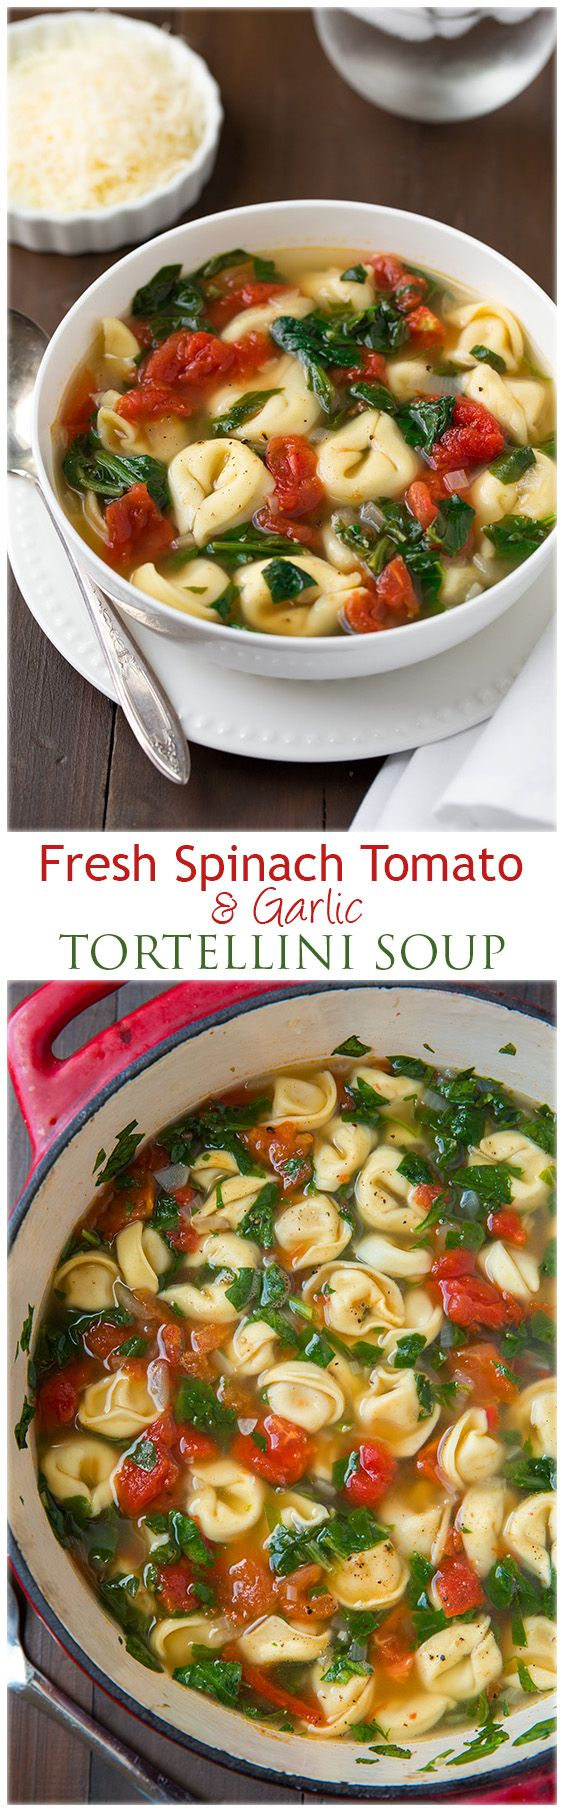 Fresh Spinach Tomato and Garlic Tortellini Soup - this soup is unbelievably delicious! So much fresh and cheesy goodness!